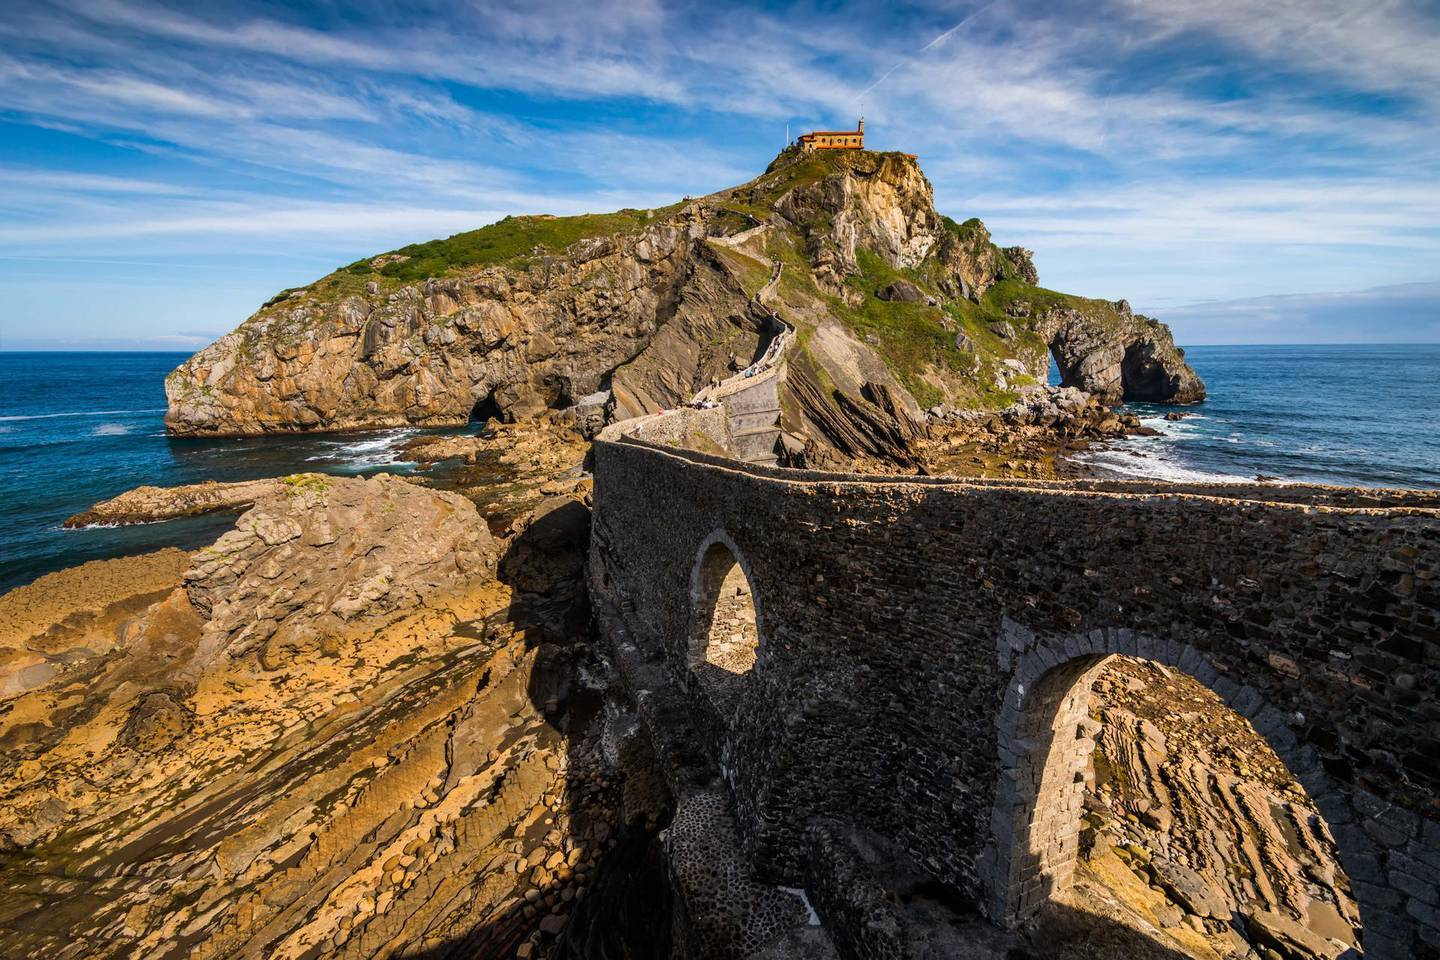 San Juan de Gaztelugatxe at sunset in Basque Country, Spain. On top of the island stands a little hermitage. Getty Images